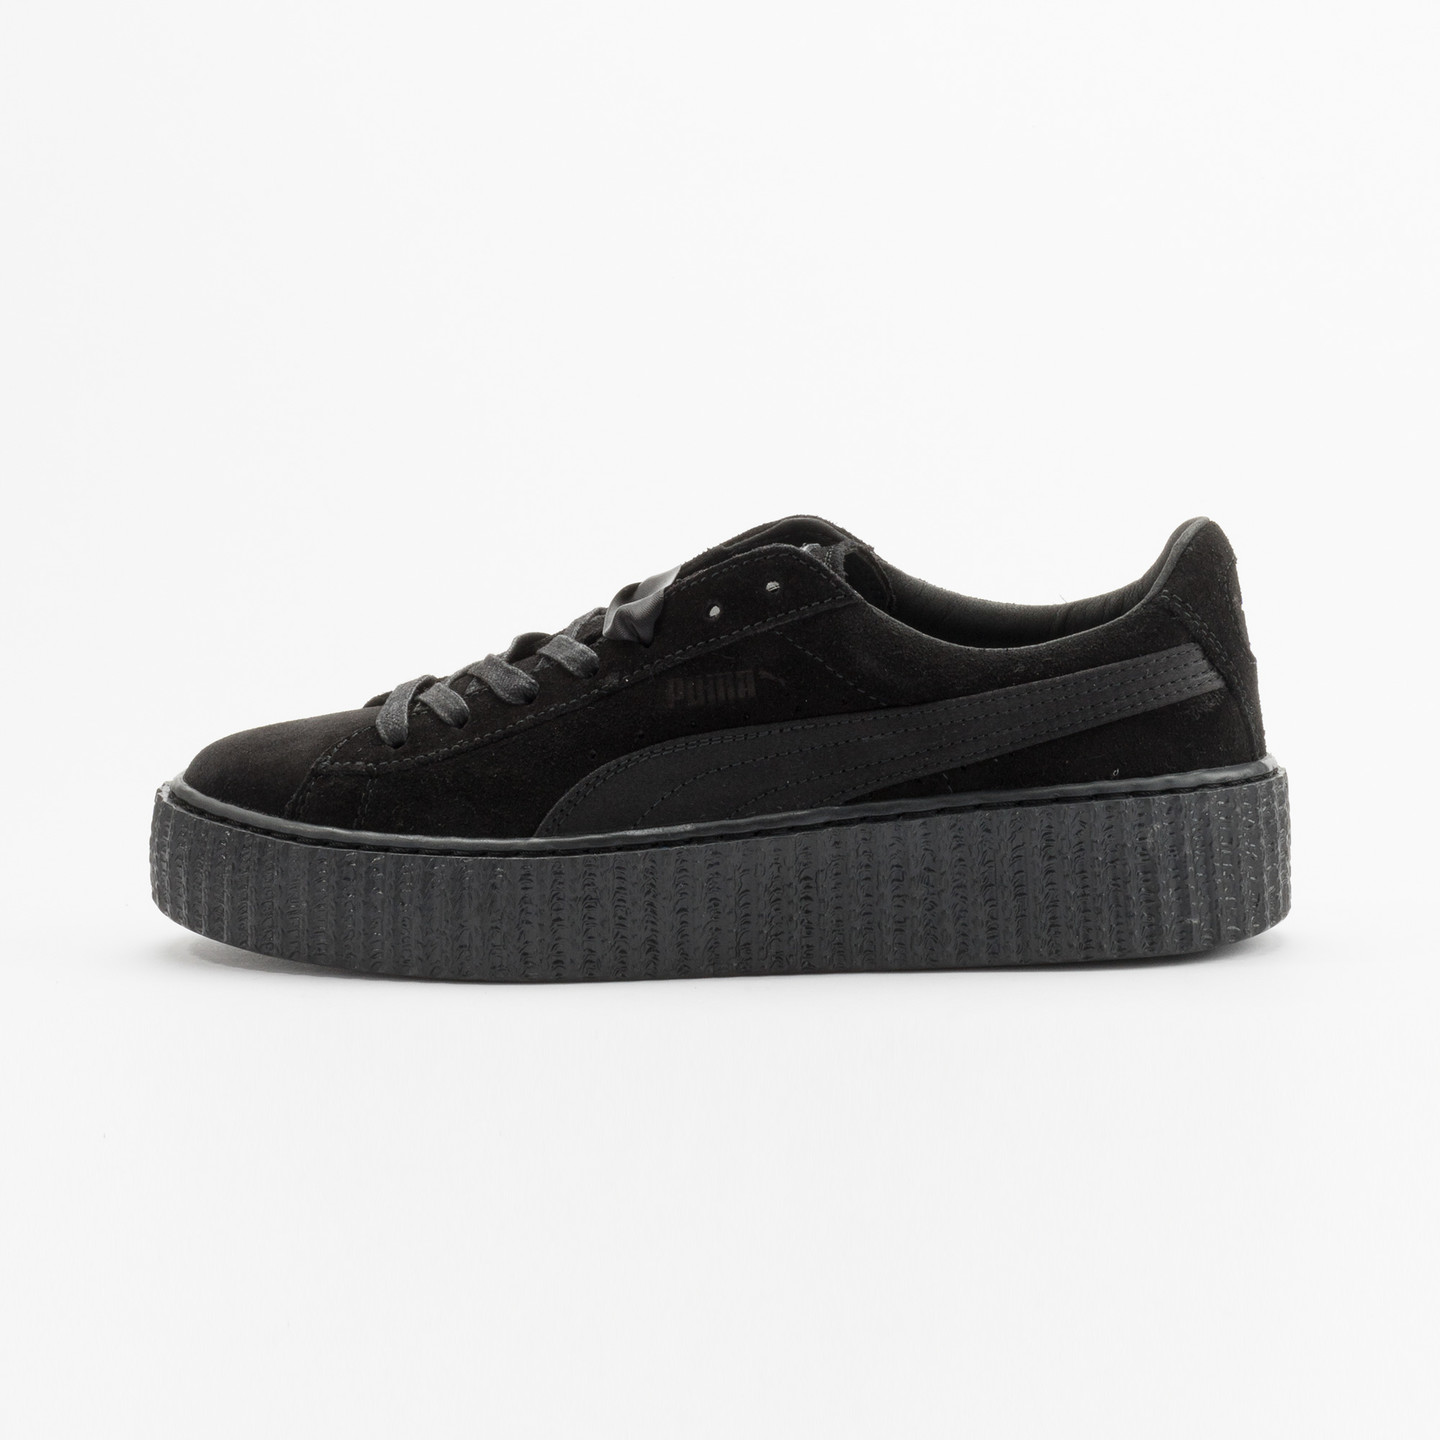 Puma Rihanna Suede Creepers Satin Triple Black 362268 01-37.5